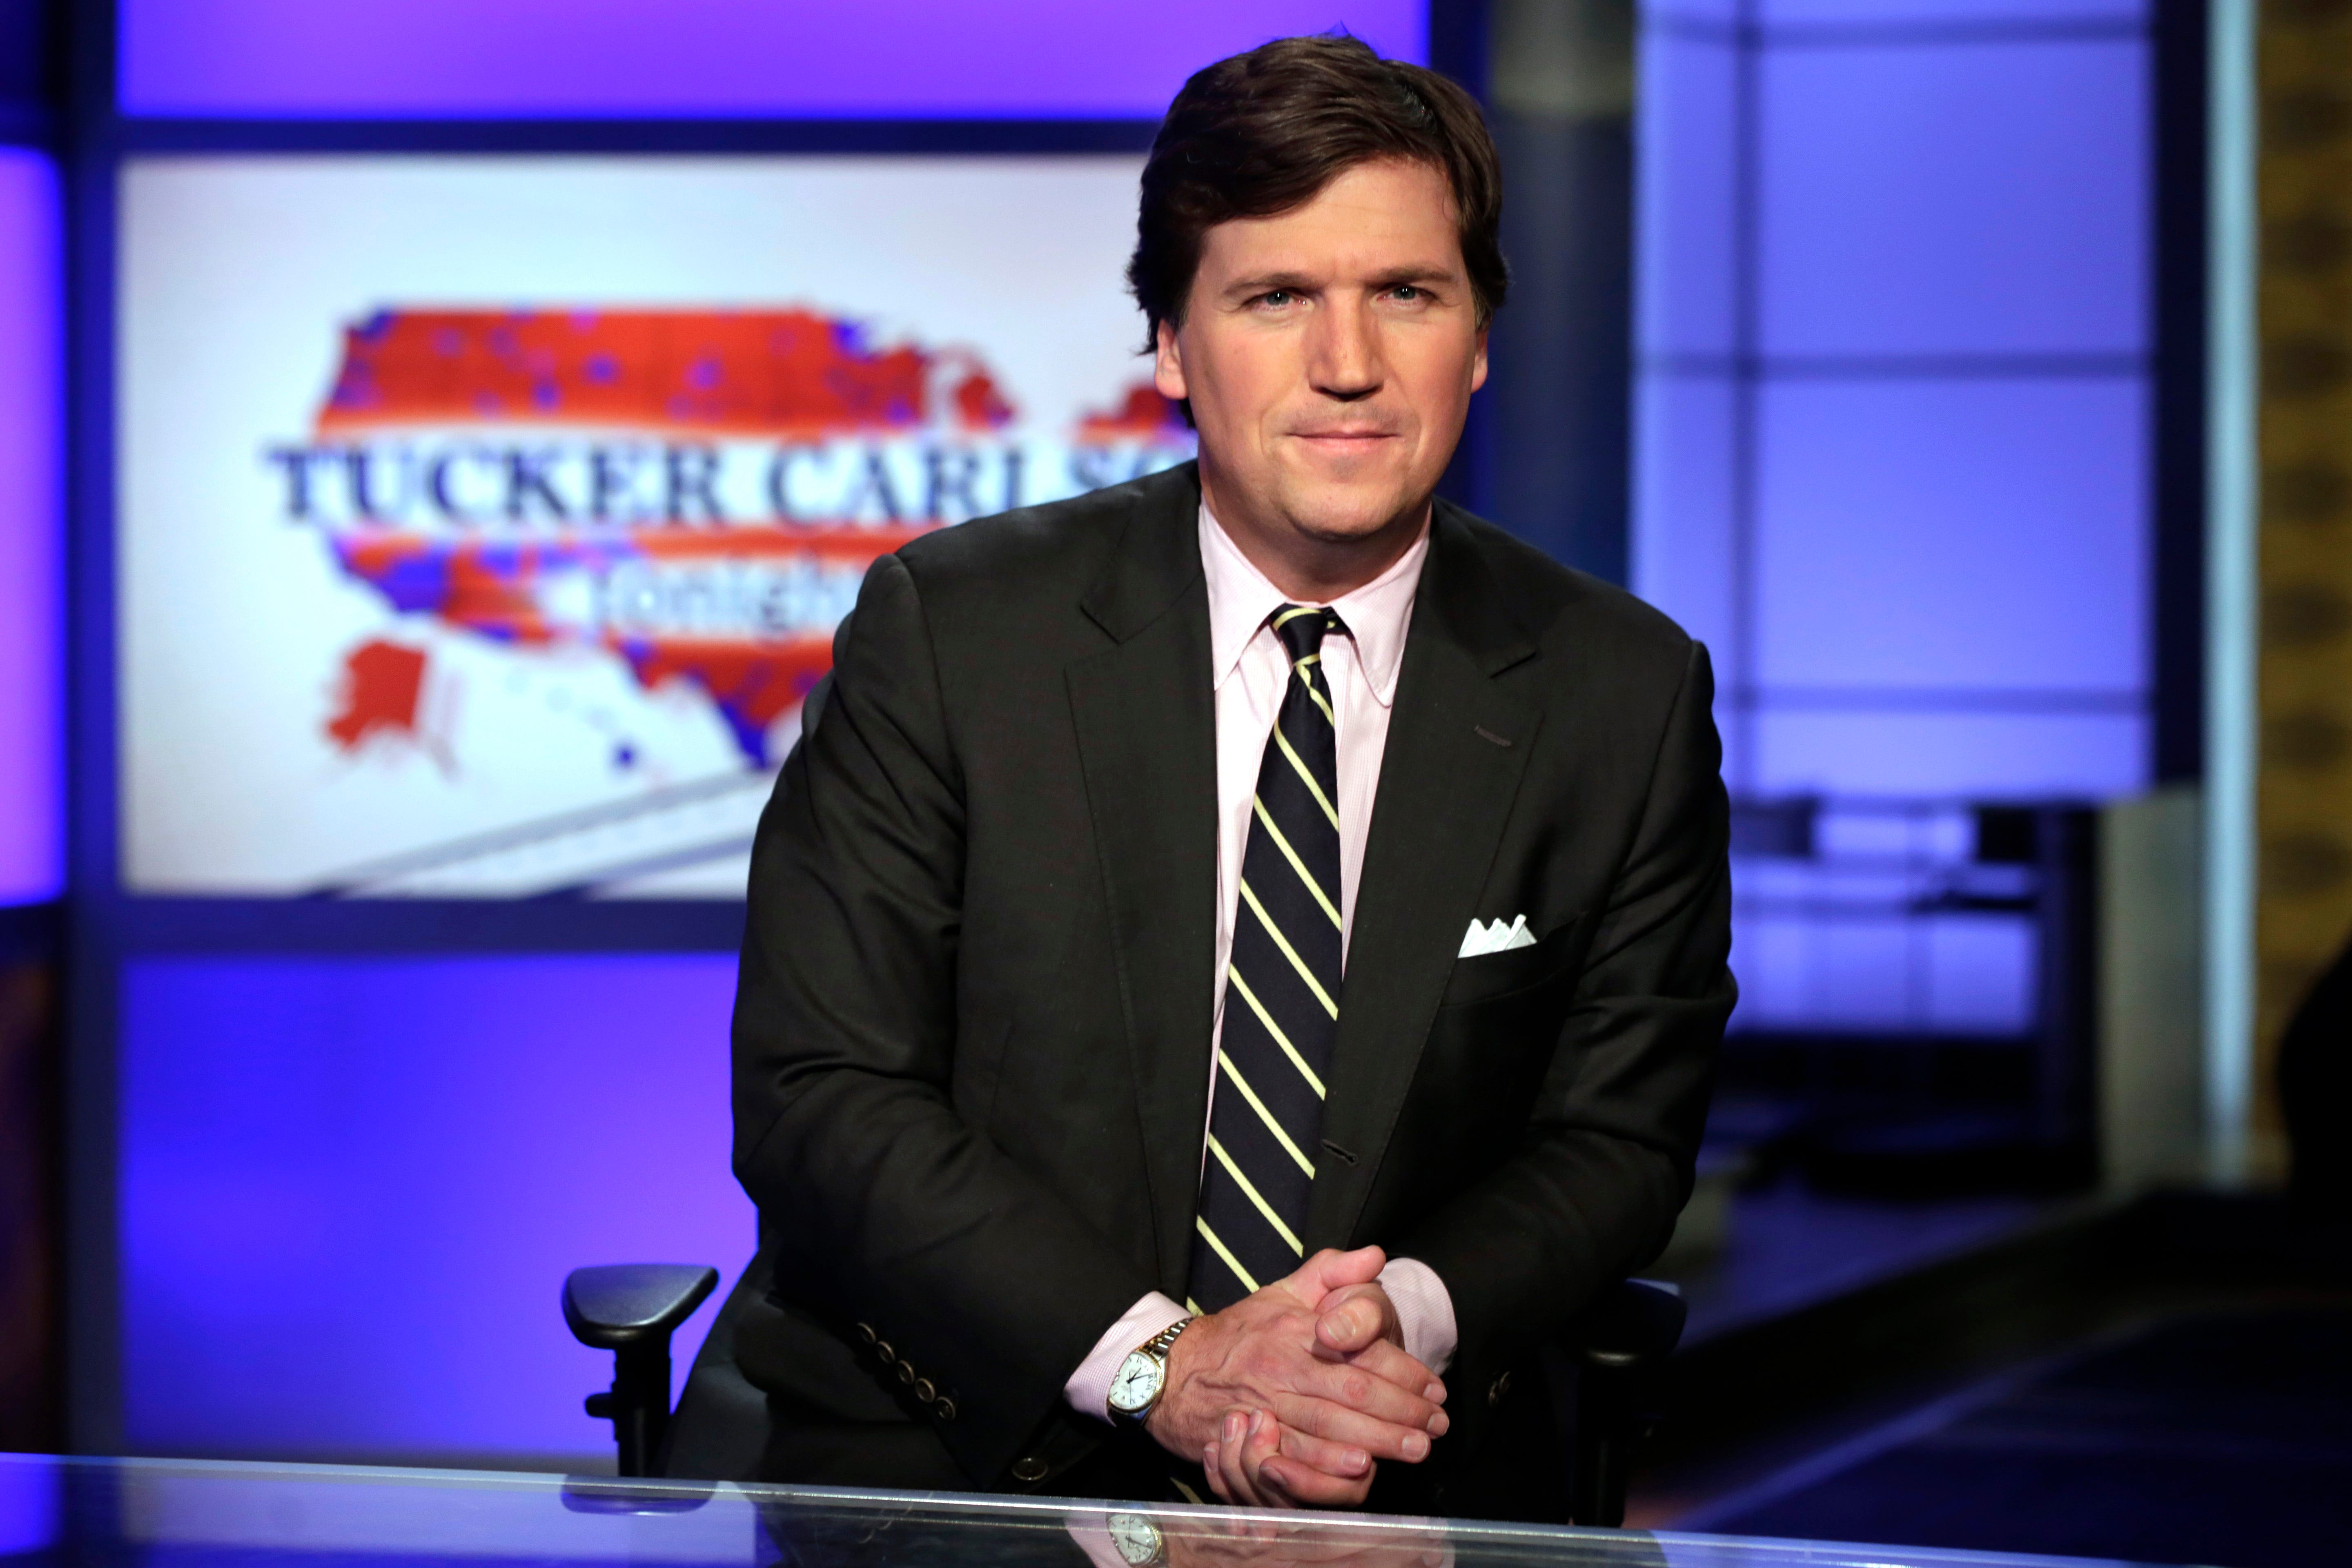 Fox News should fire Tucker Carlson before his bullying on COVID masks gets someone killed